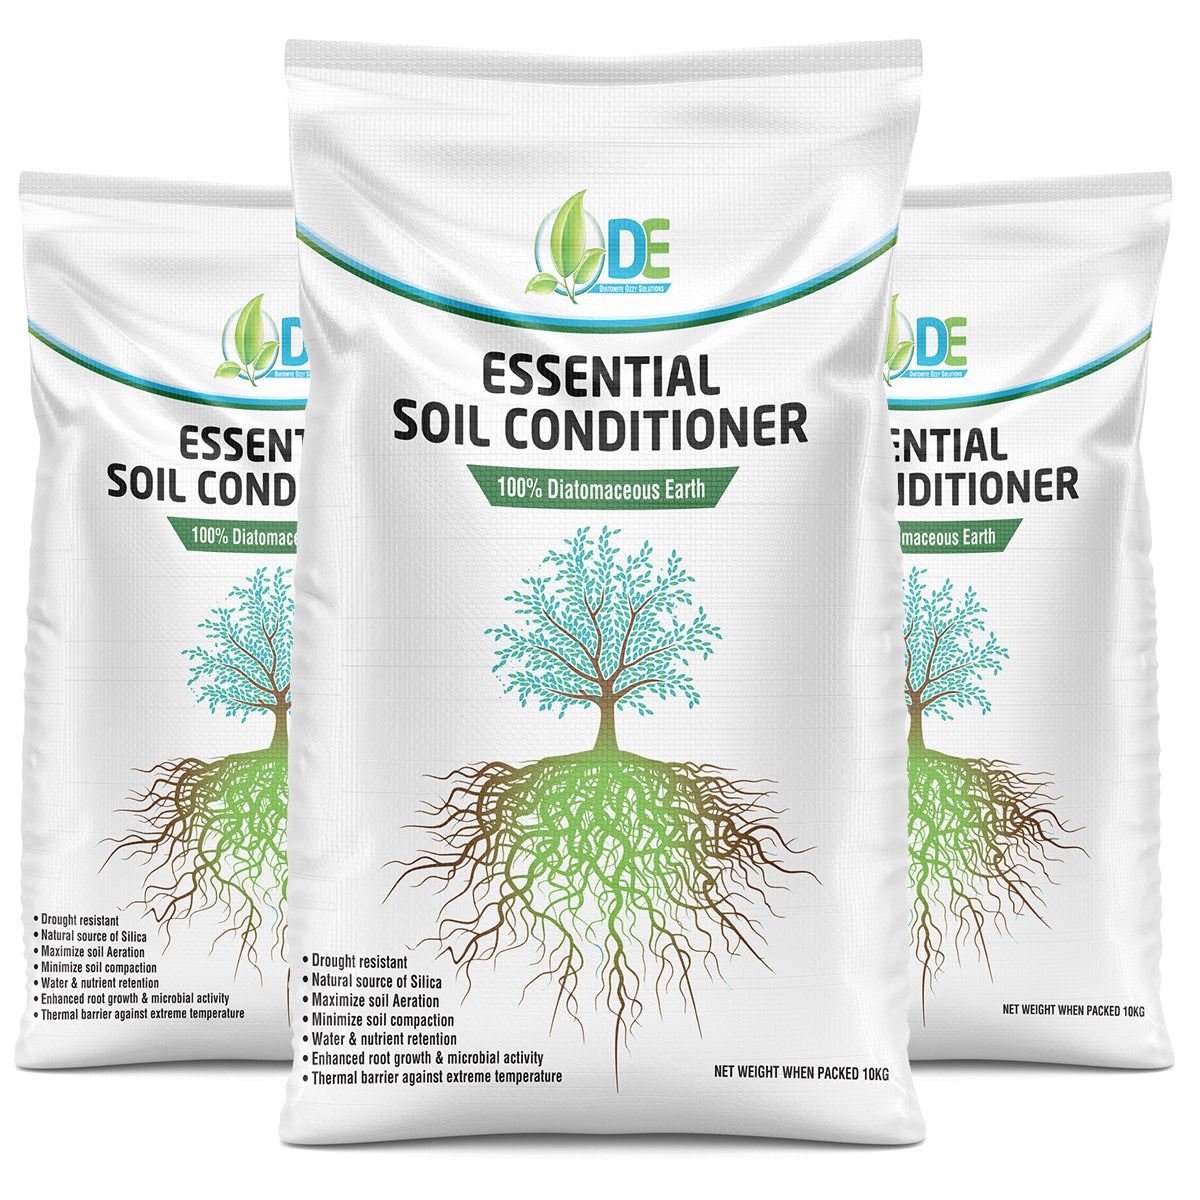 DE ESSENTIAL SOIL CONDITIONER | DIATOMACEOUS EARTH | ROOT ENHANCER 10KG BAG